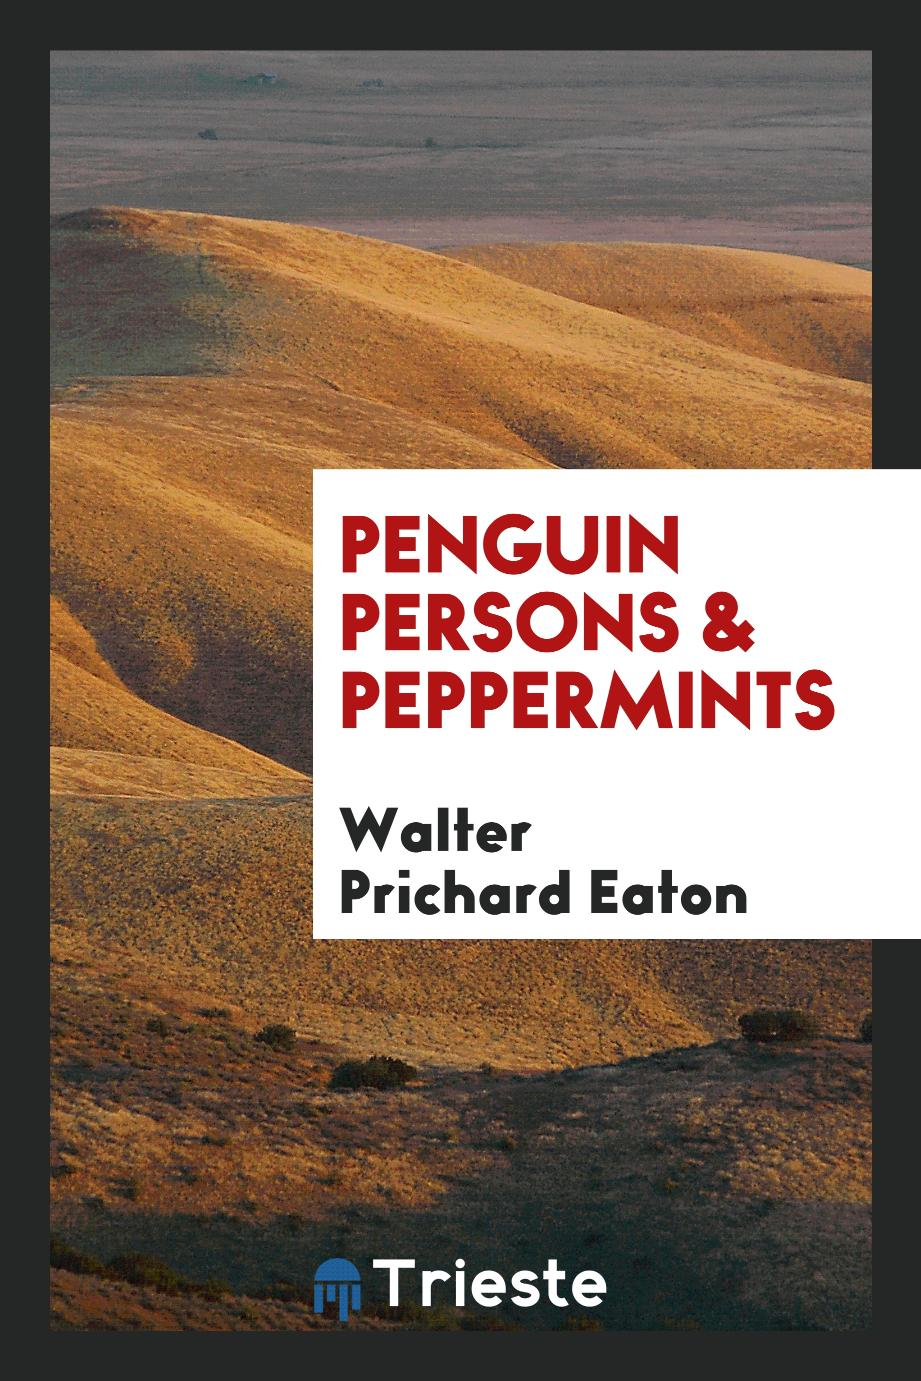 Penguin persons & peppermints